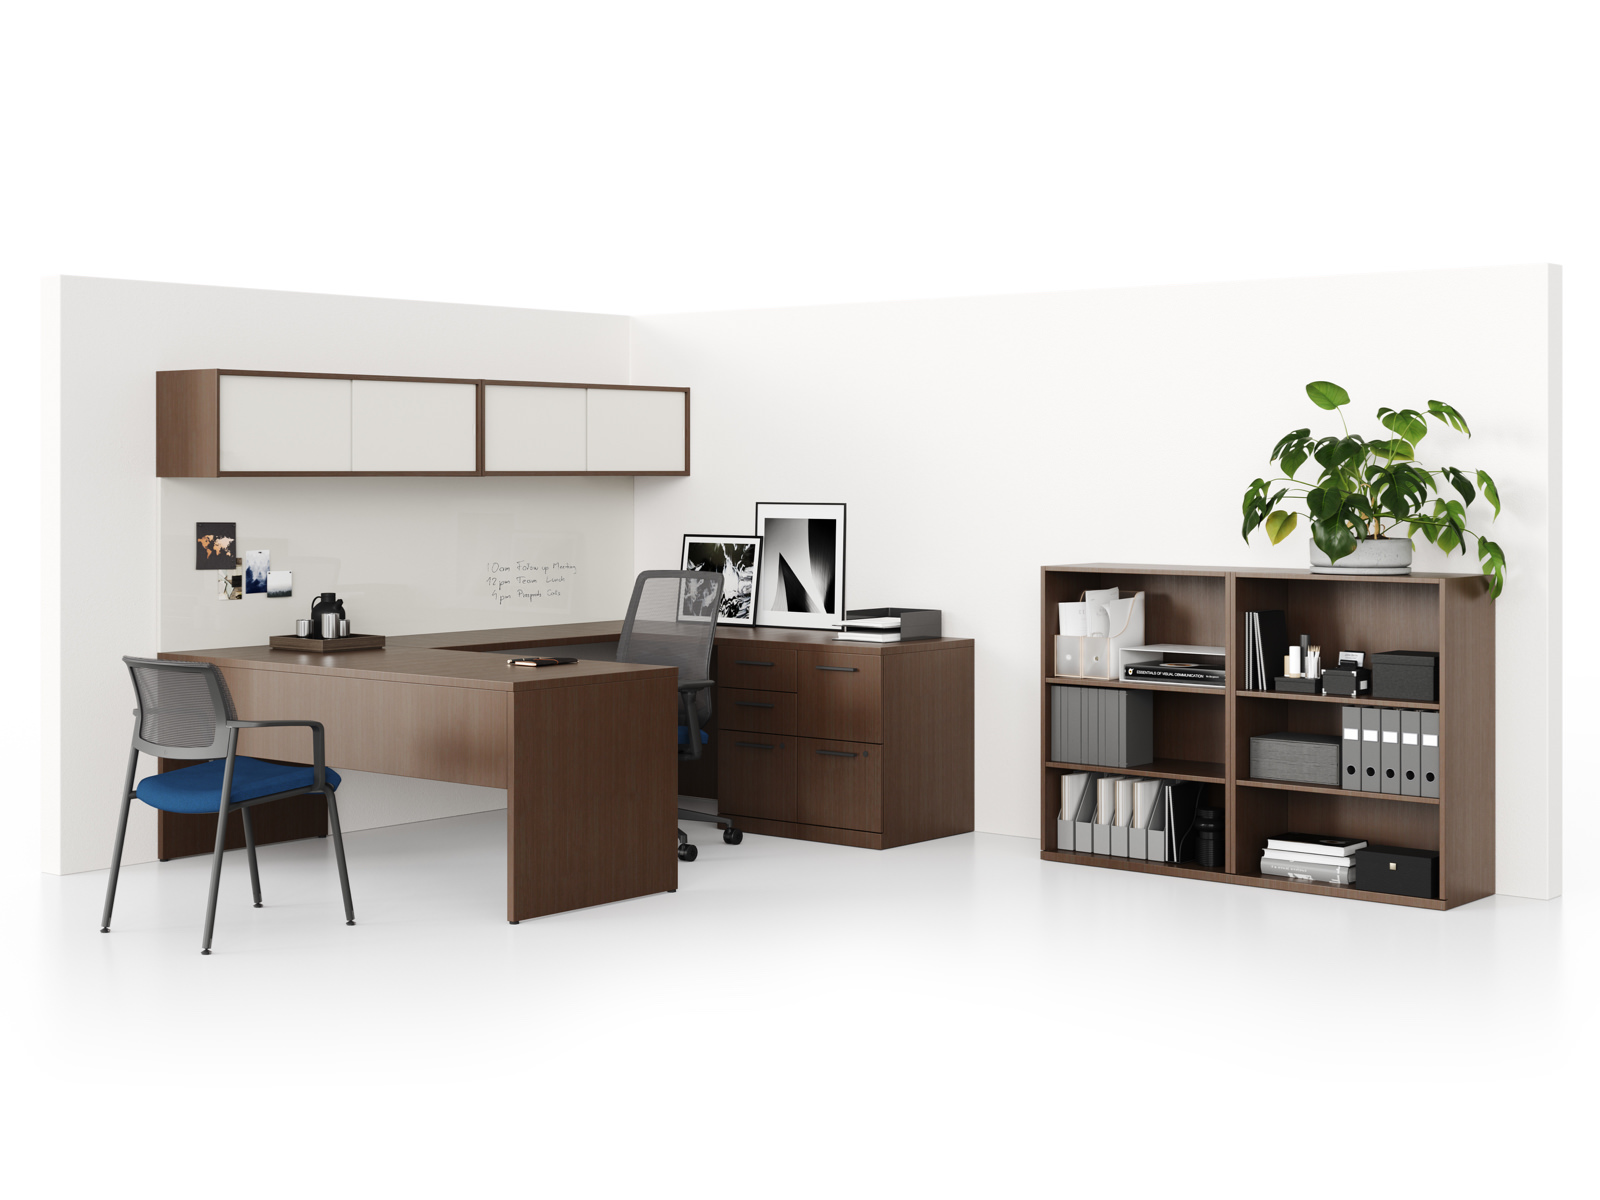 A Canvas Private Office with a U-shaped workstation and freestanding bookcase in a dark wood finish, supported by Verus office and side chairs.